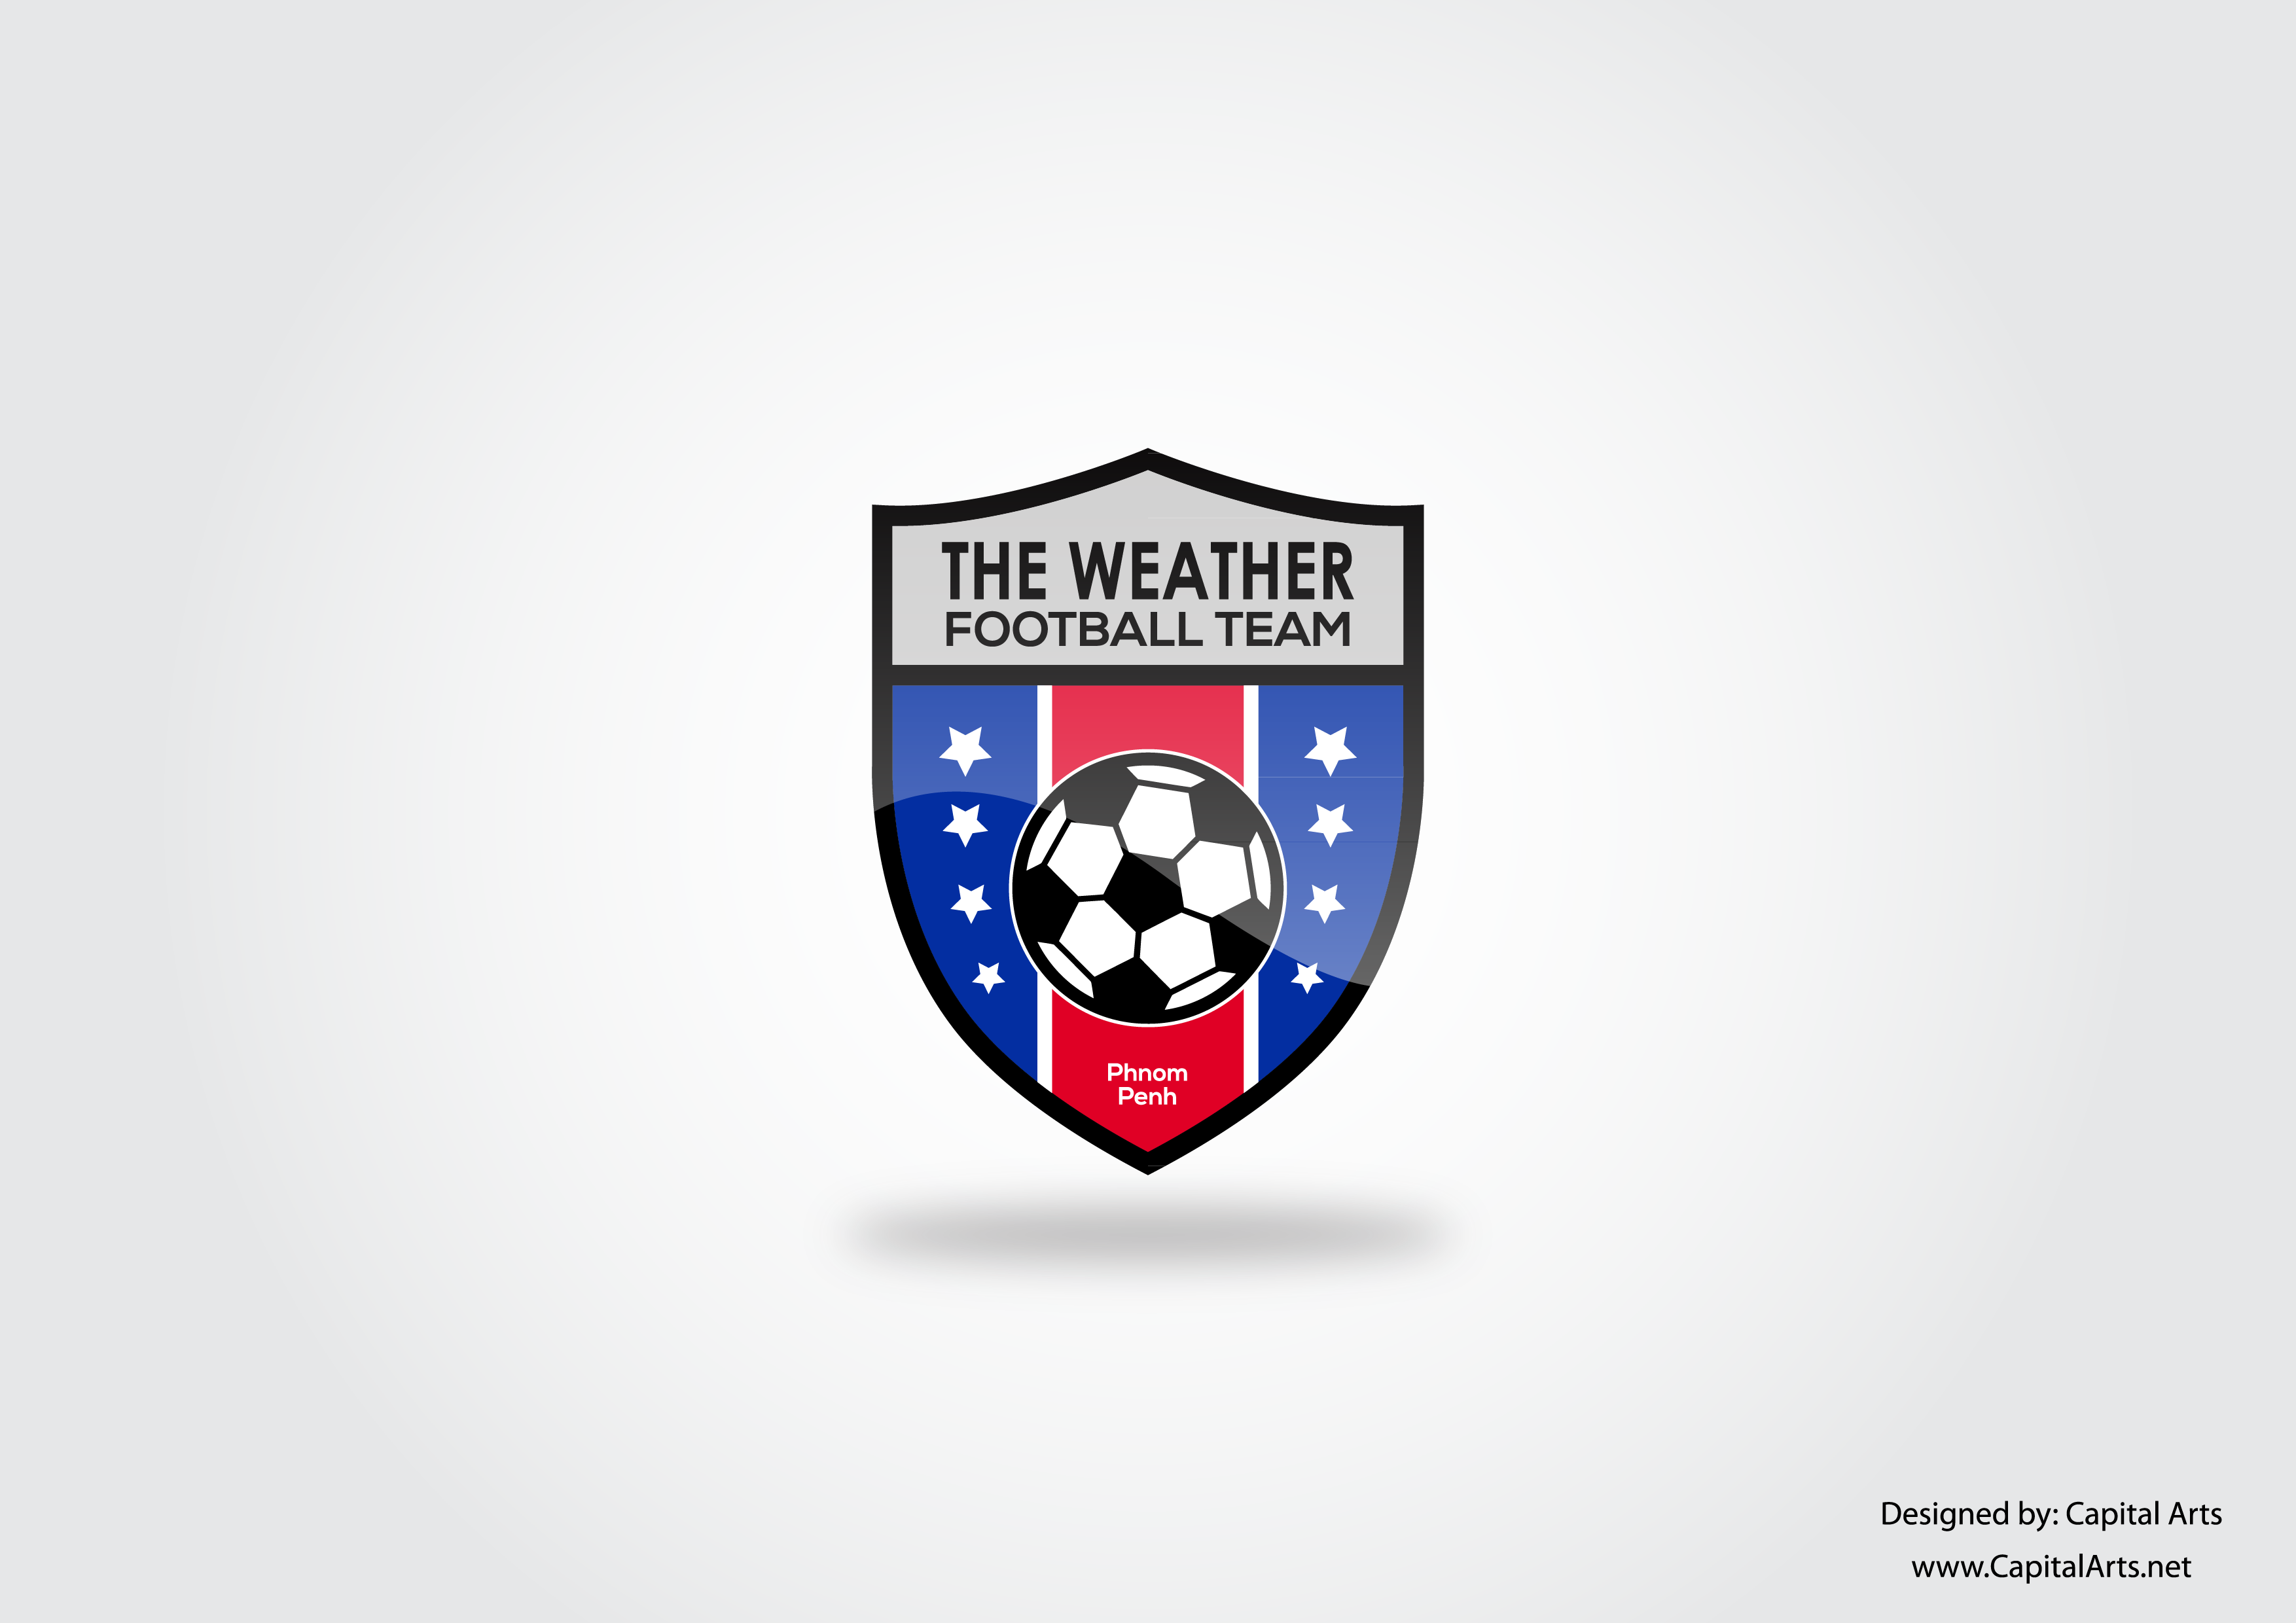 The Weather Football